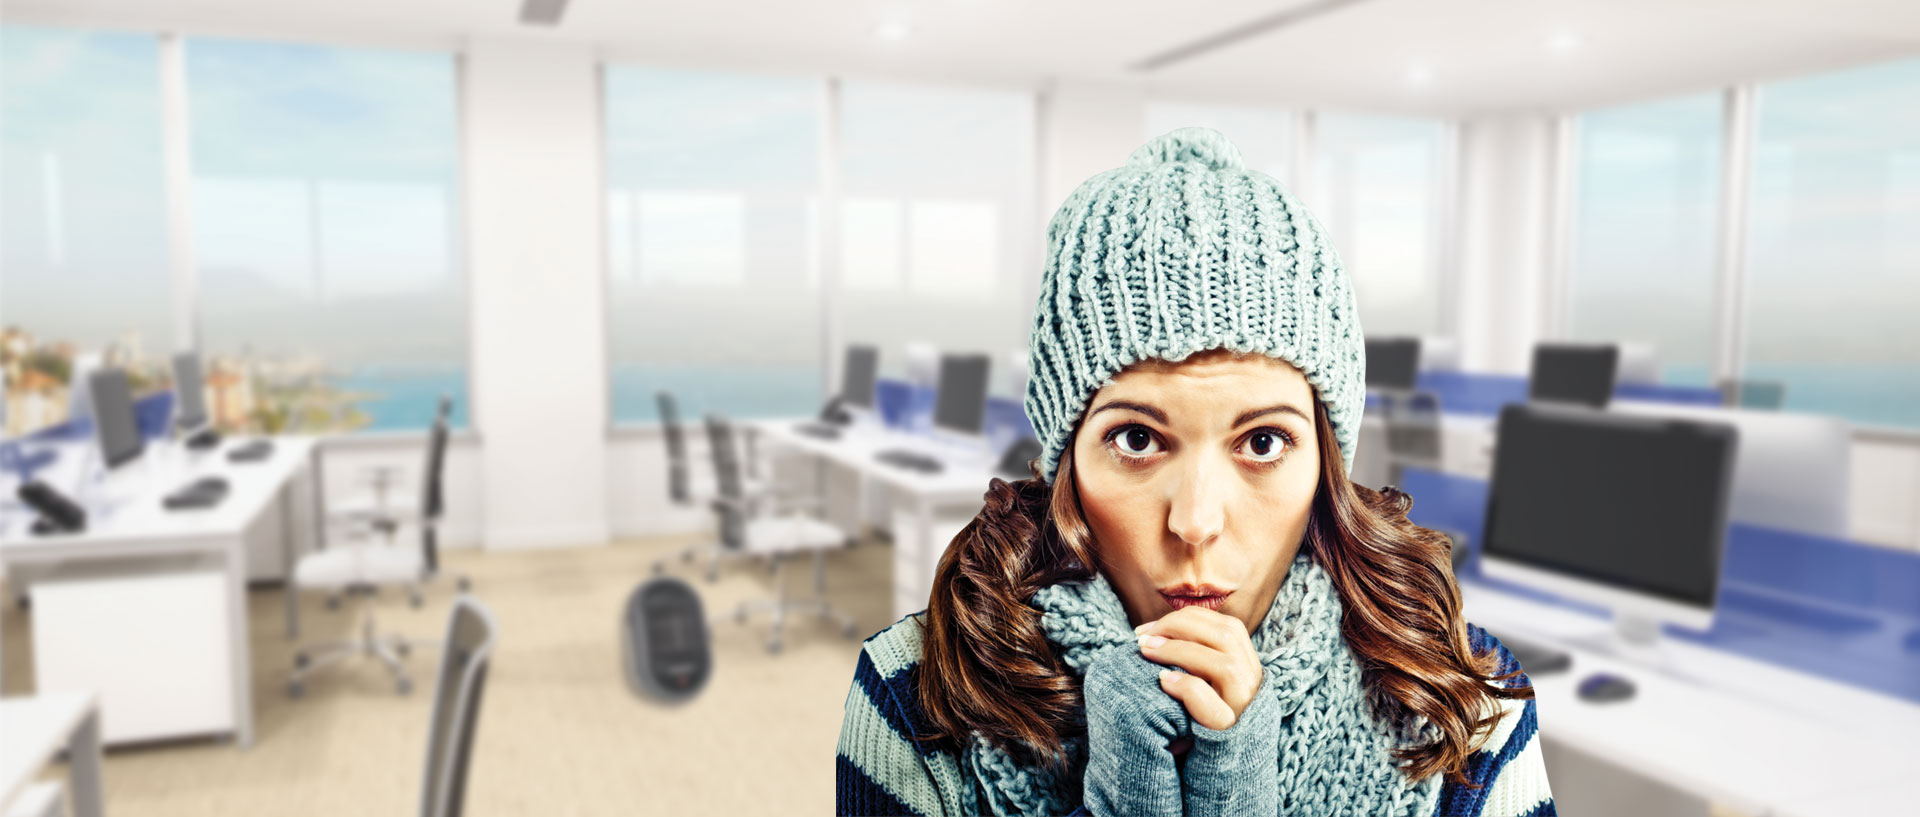 consumer reports office chairs first gaming chair freezing at work try a personal heater